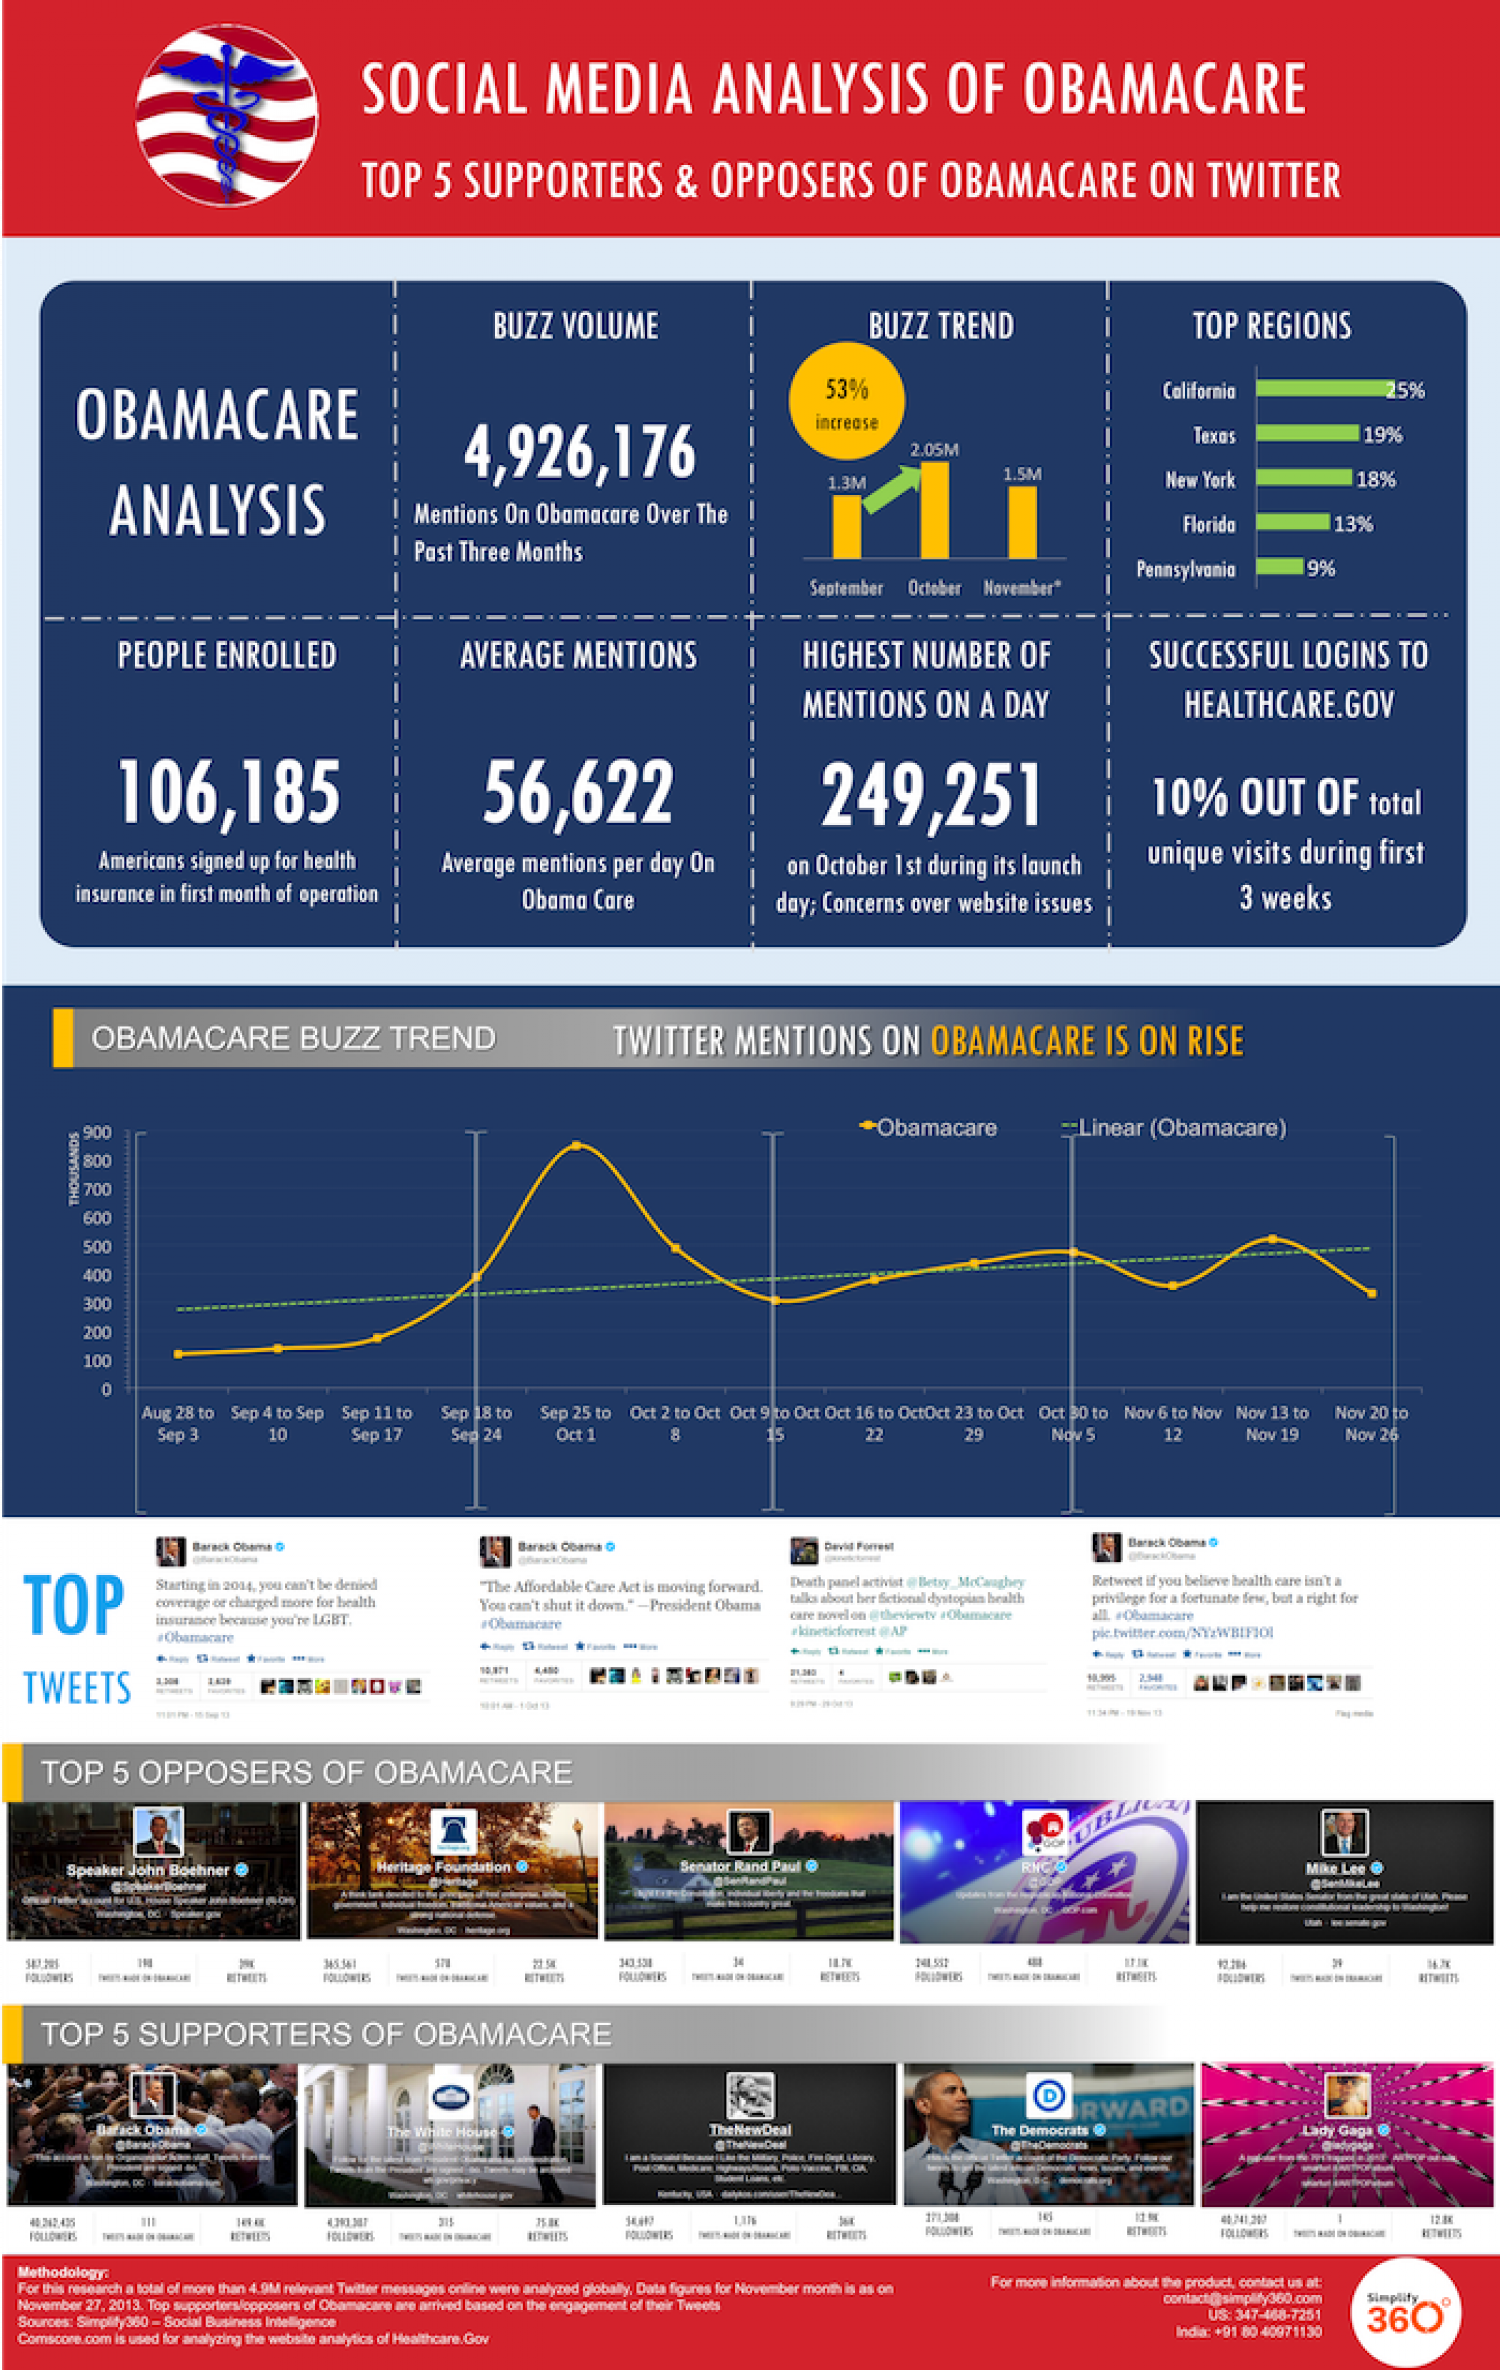 Social Media Analysis of Obamacare Infographic